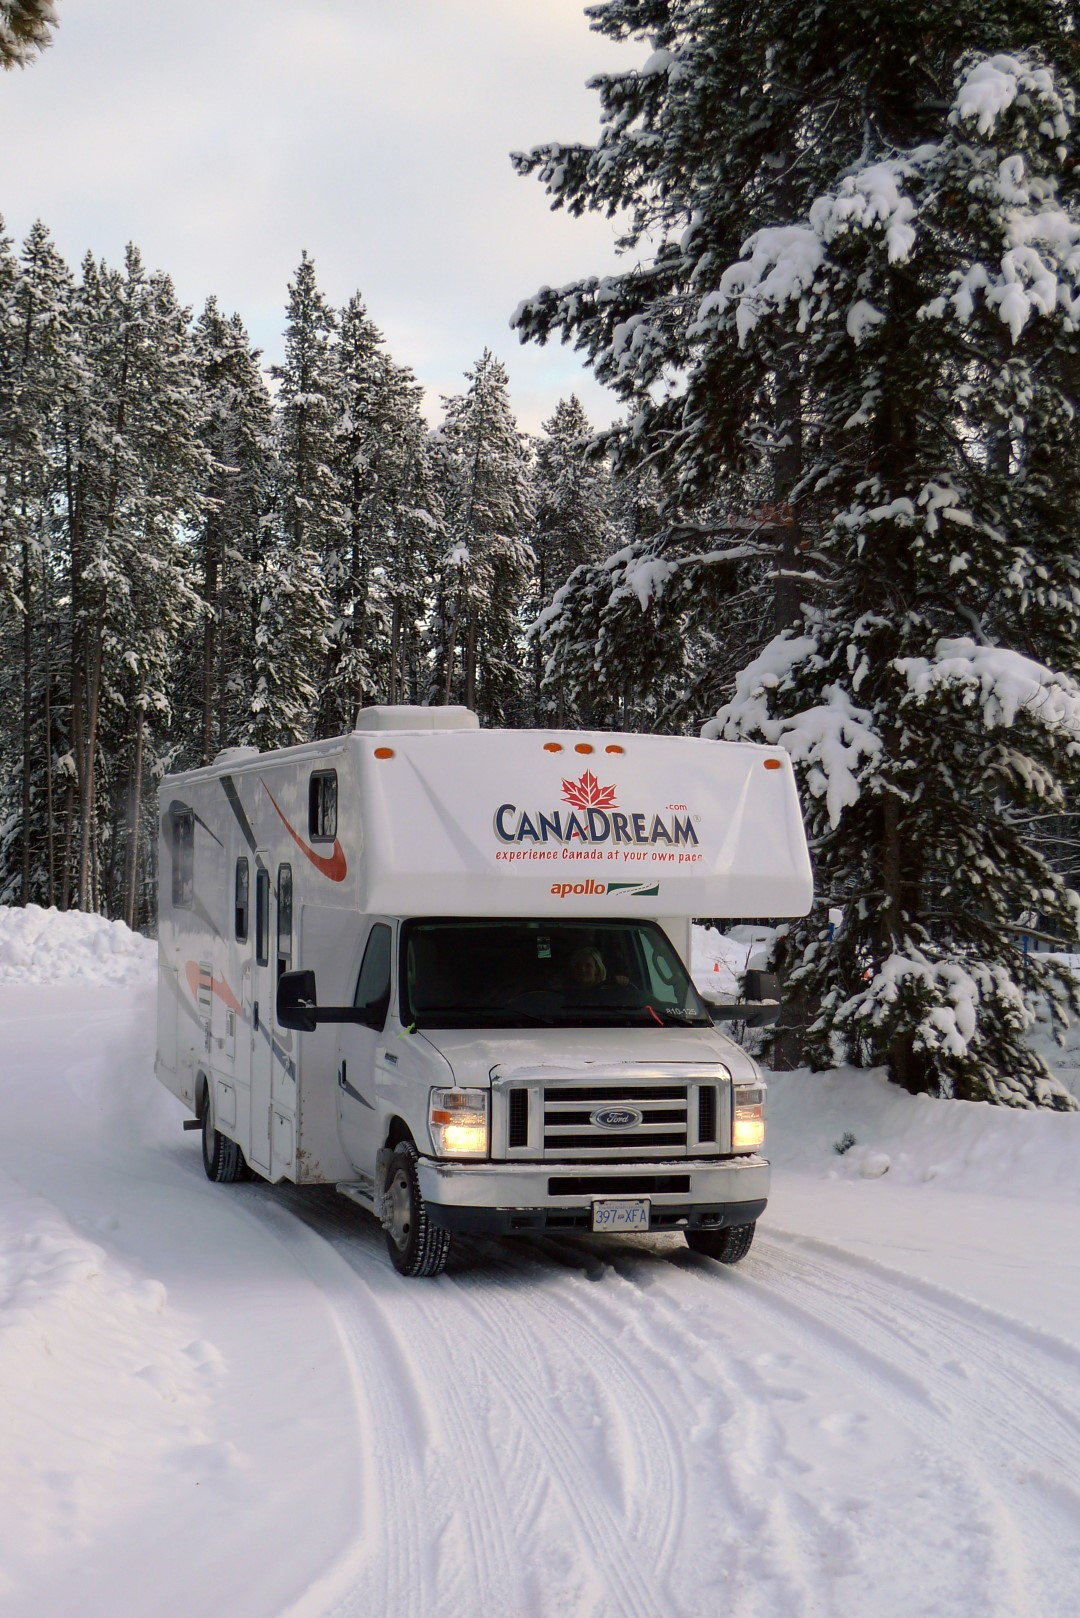 A canadream rental RV travelling in the winter